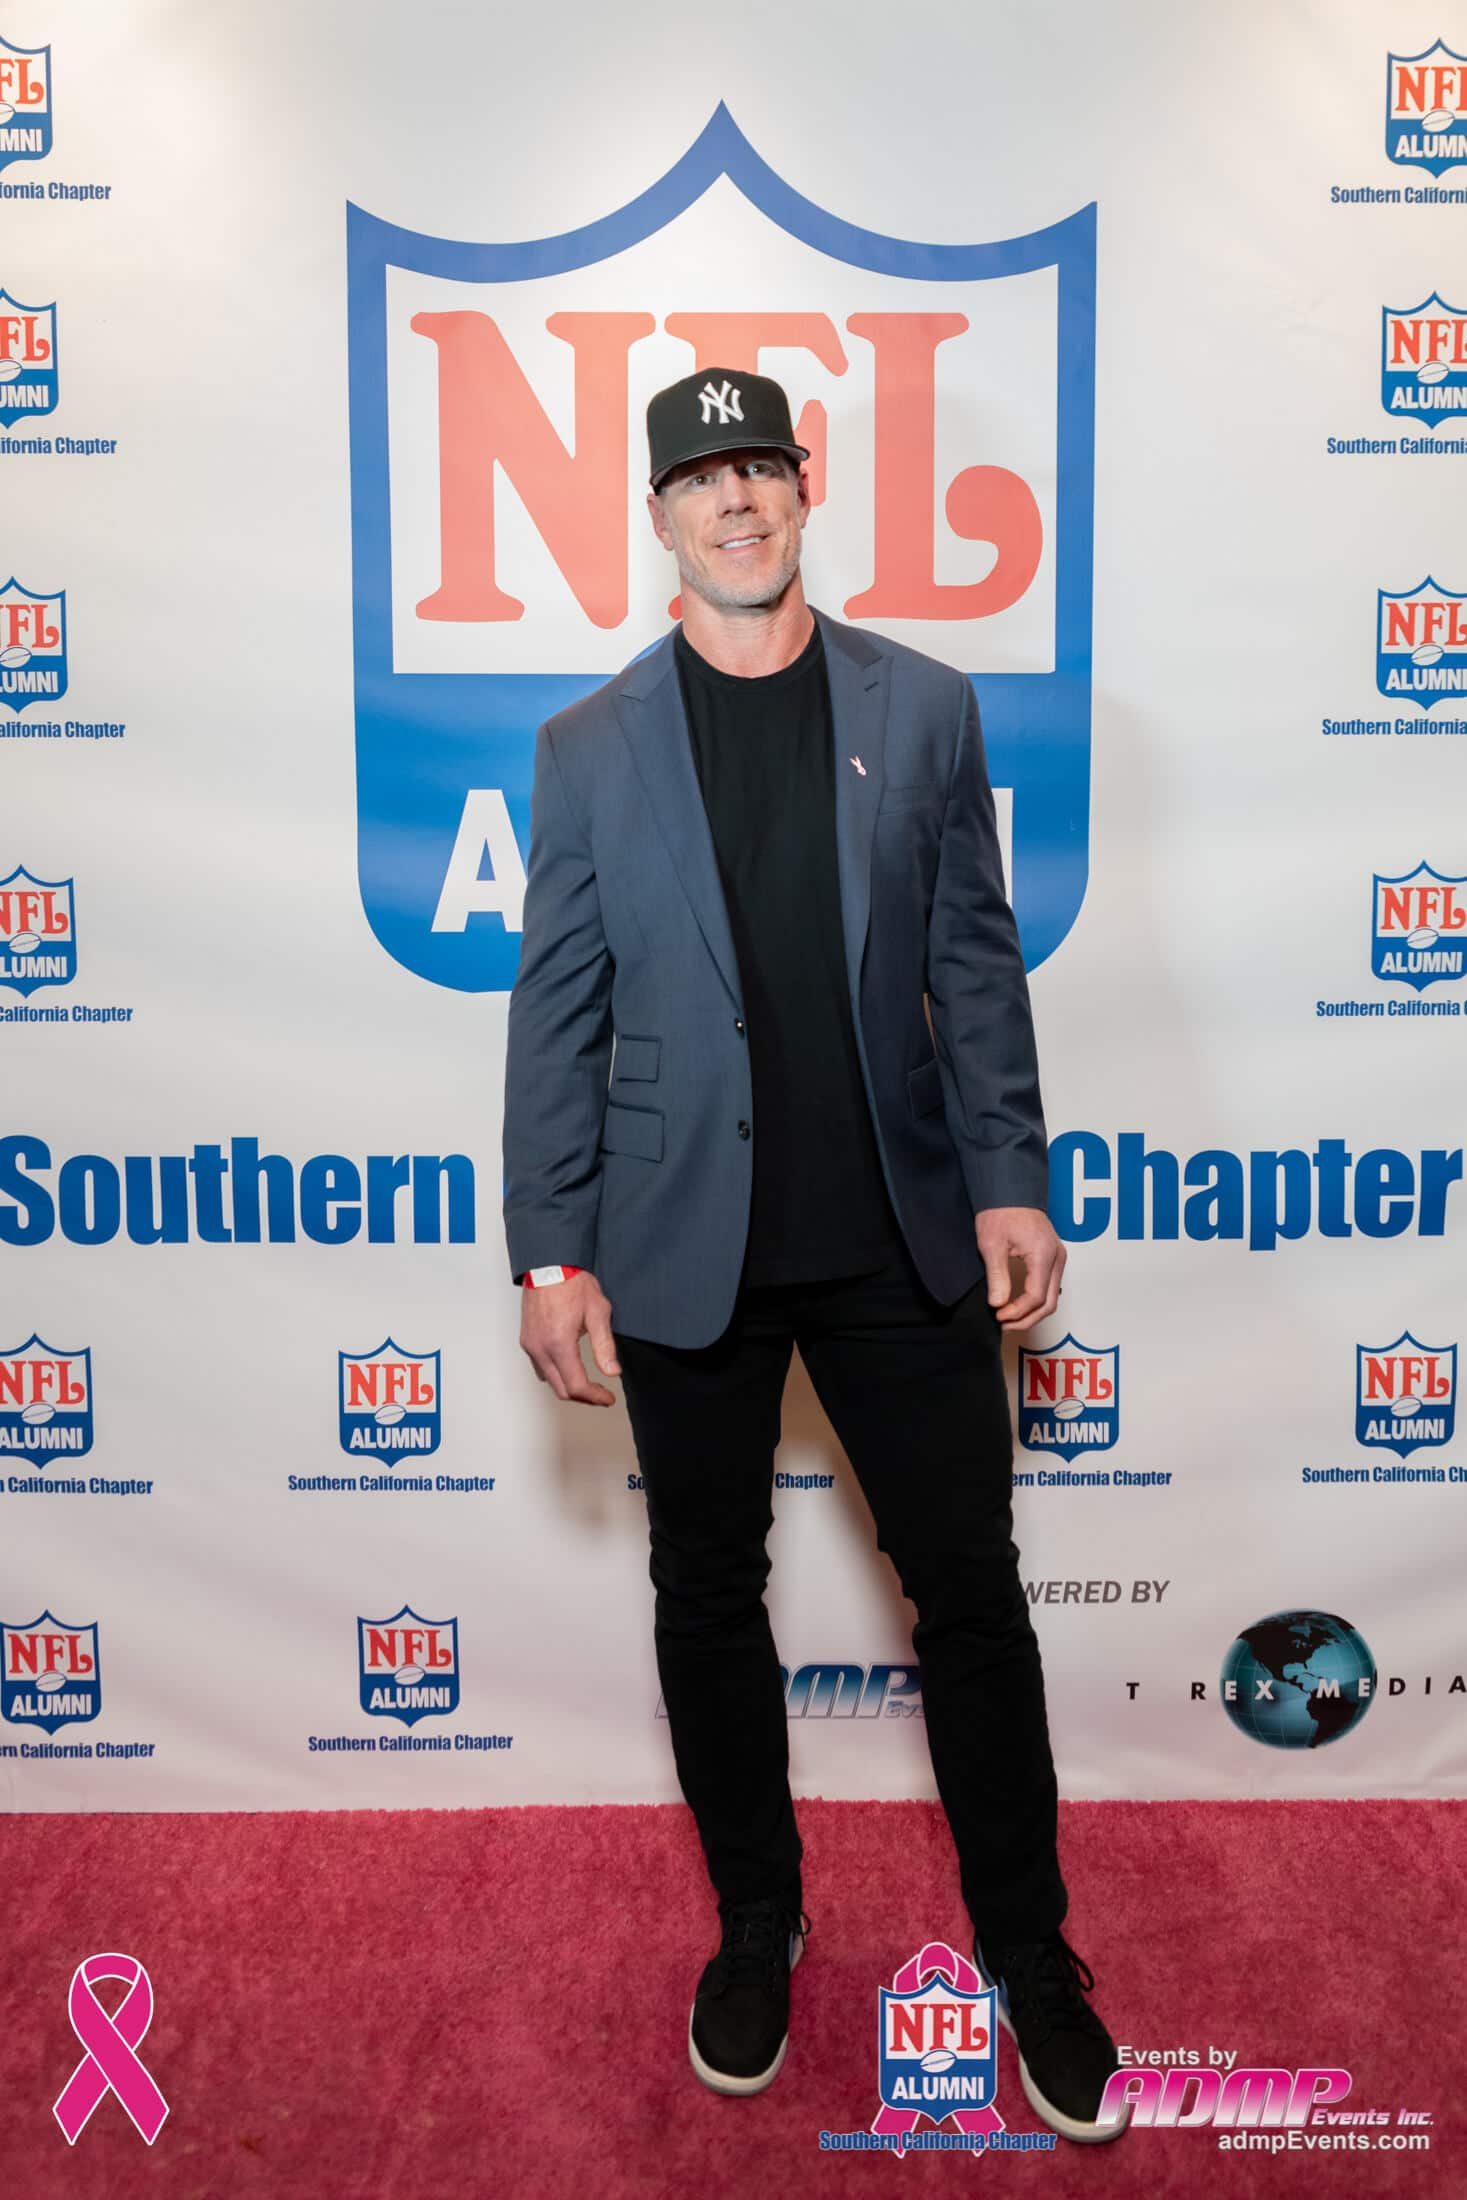 NFL Alumni SoCal Charity Event Series Breast Cancer Event 10-14-19-024